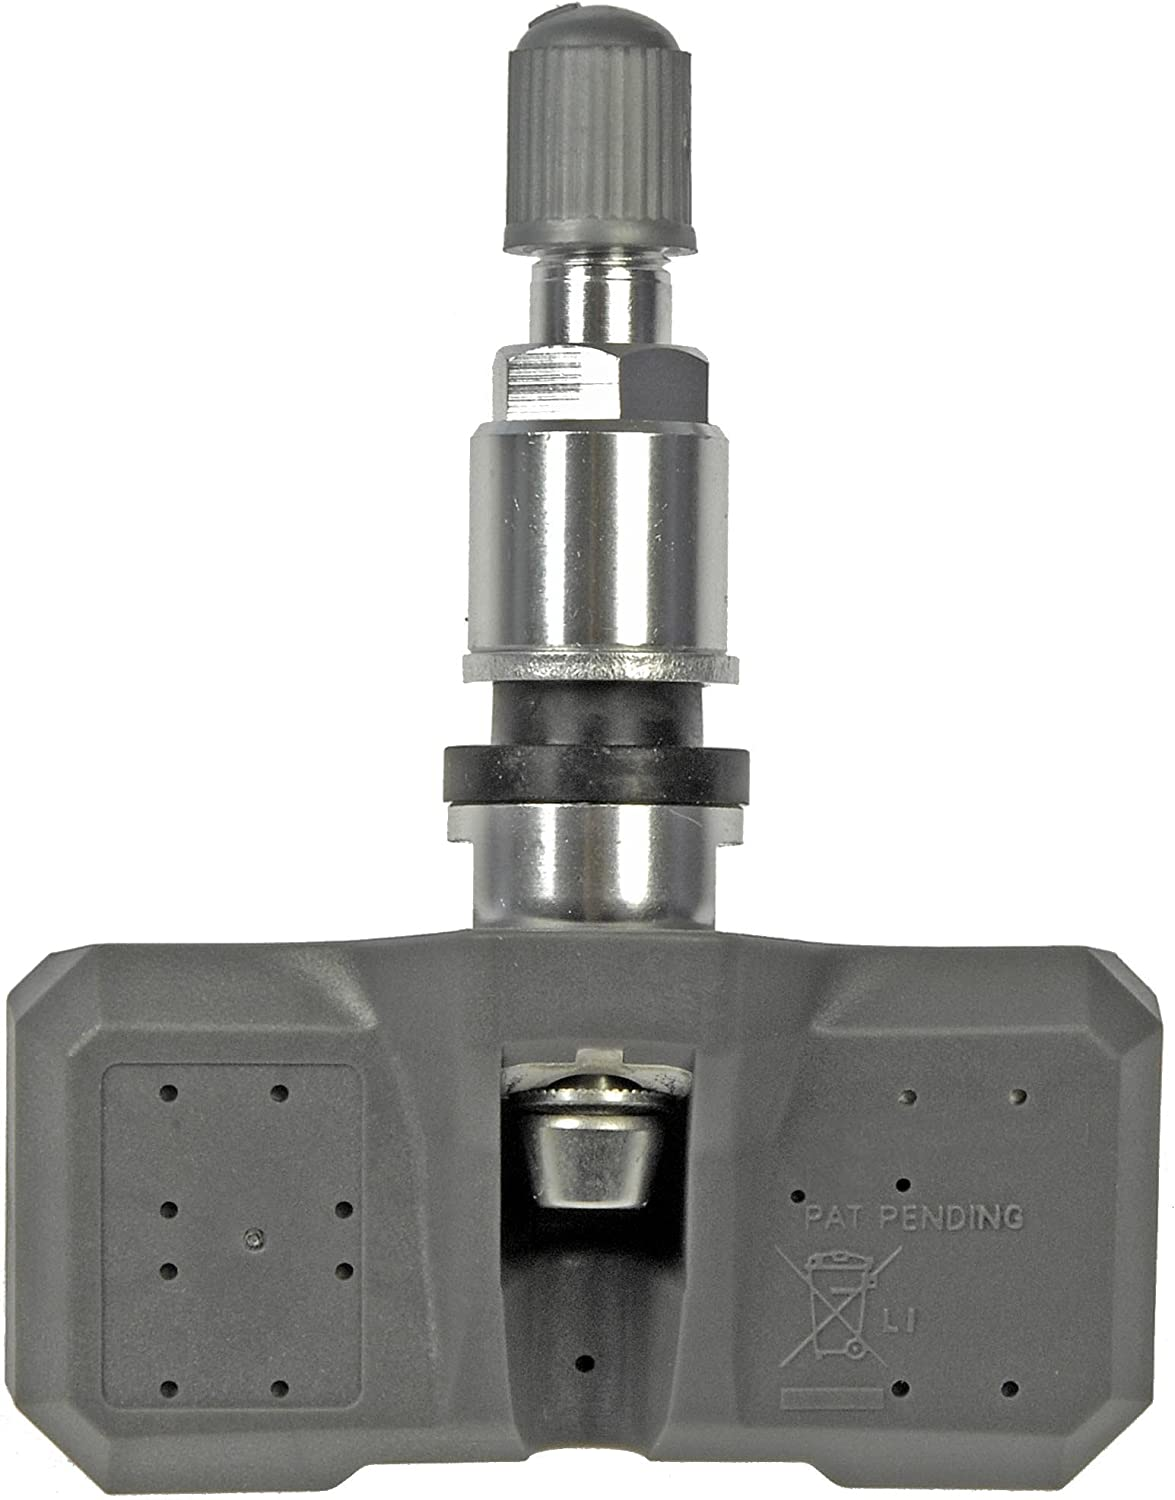 Dorman 974-044 Tire Pressure Monitoring Select Sensor for Super Raleigh Mall special price System